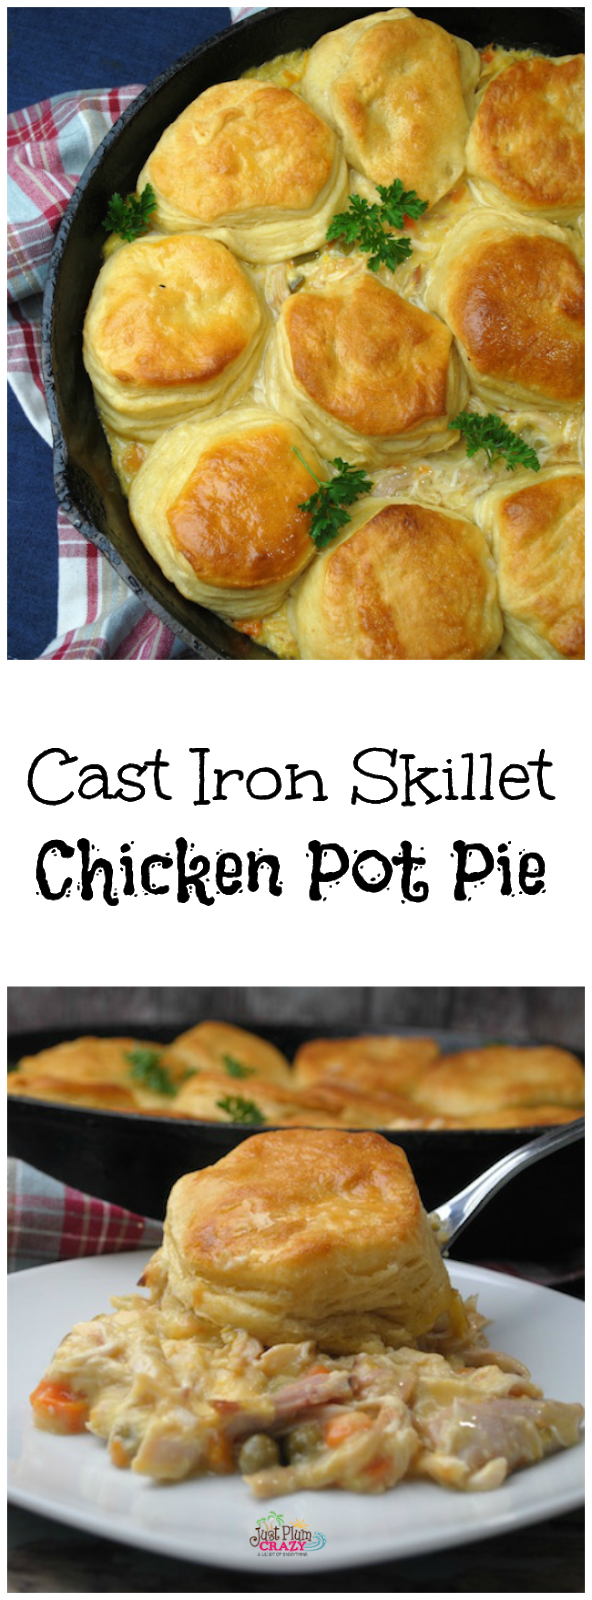 4 Ingredient Cast Iron Skillet Chicken Pot Pie